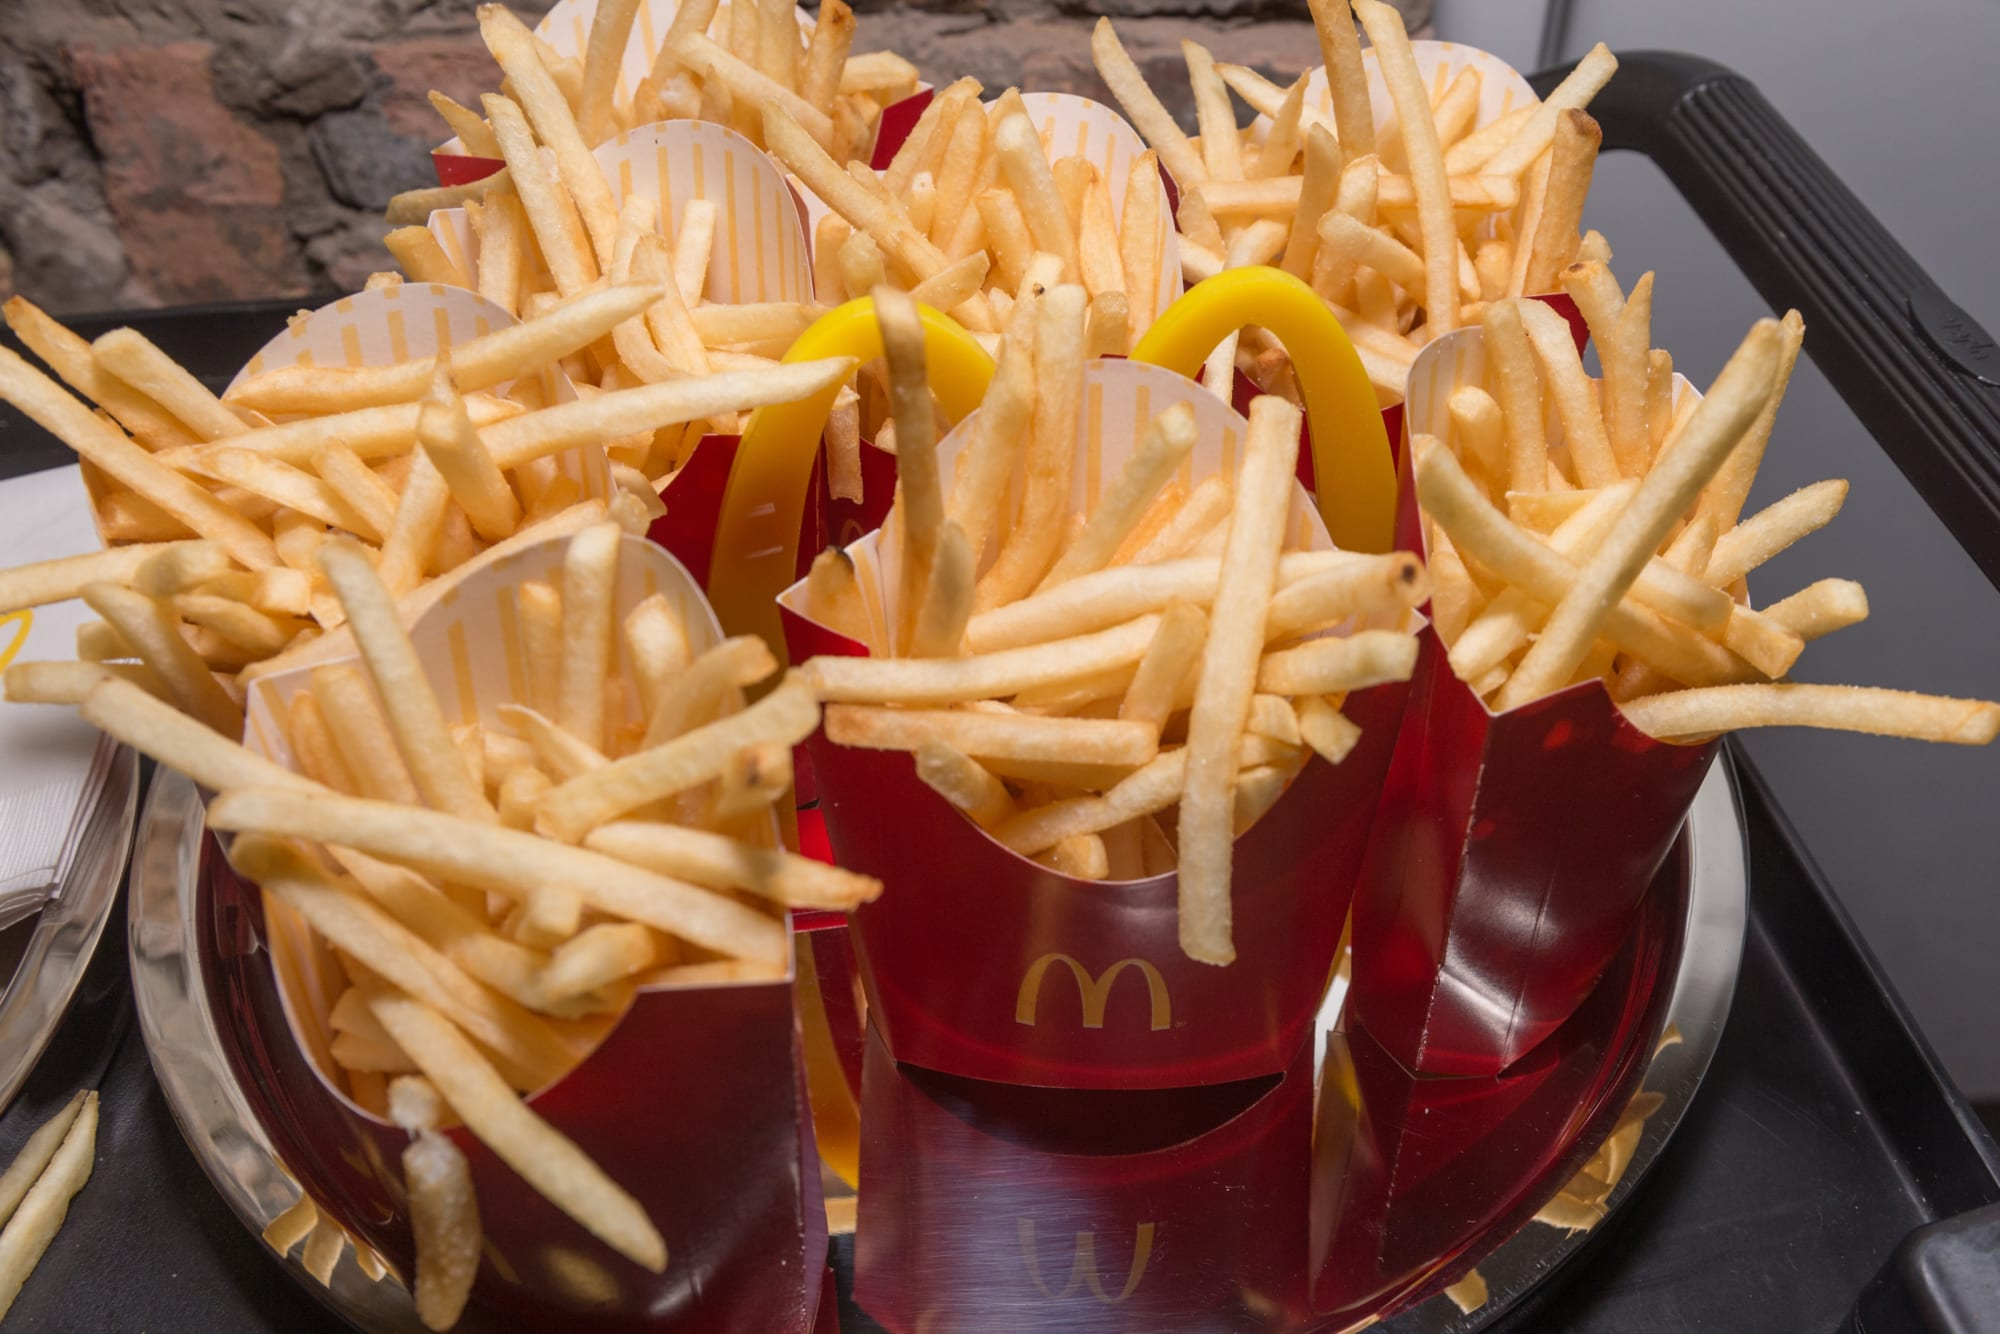 How to make McDonald's fries at home